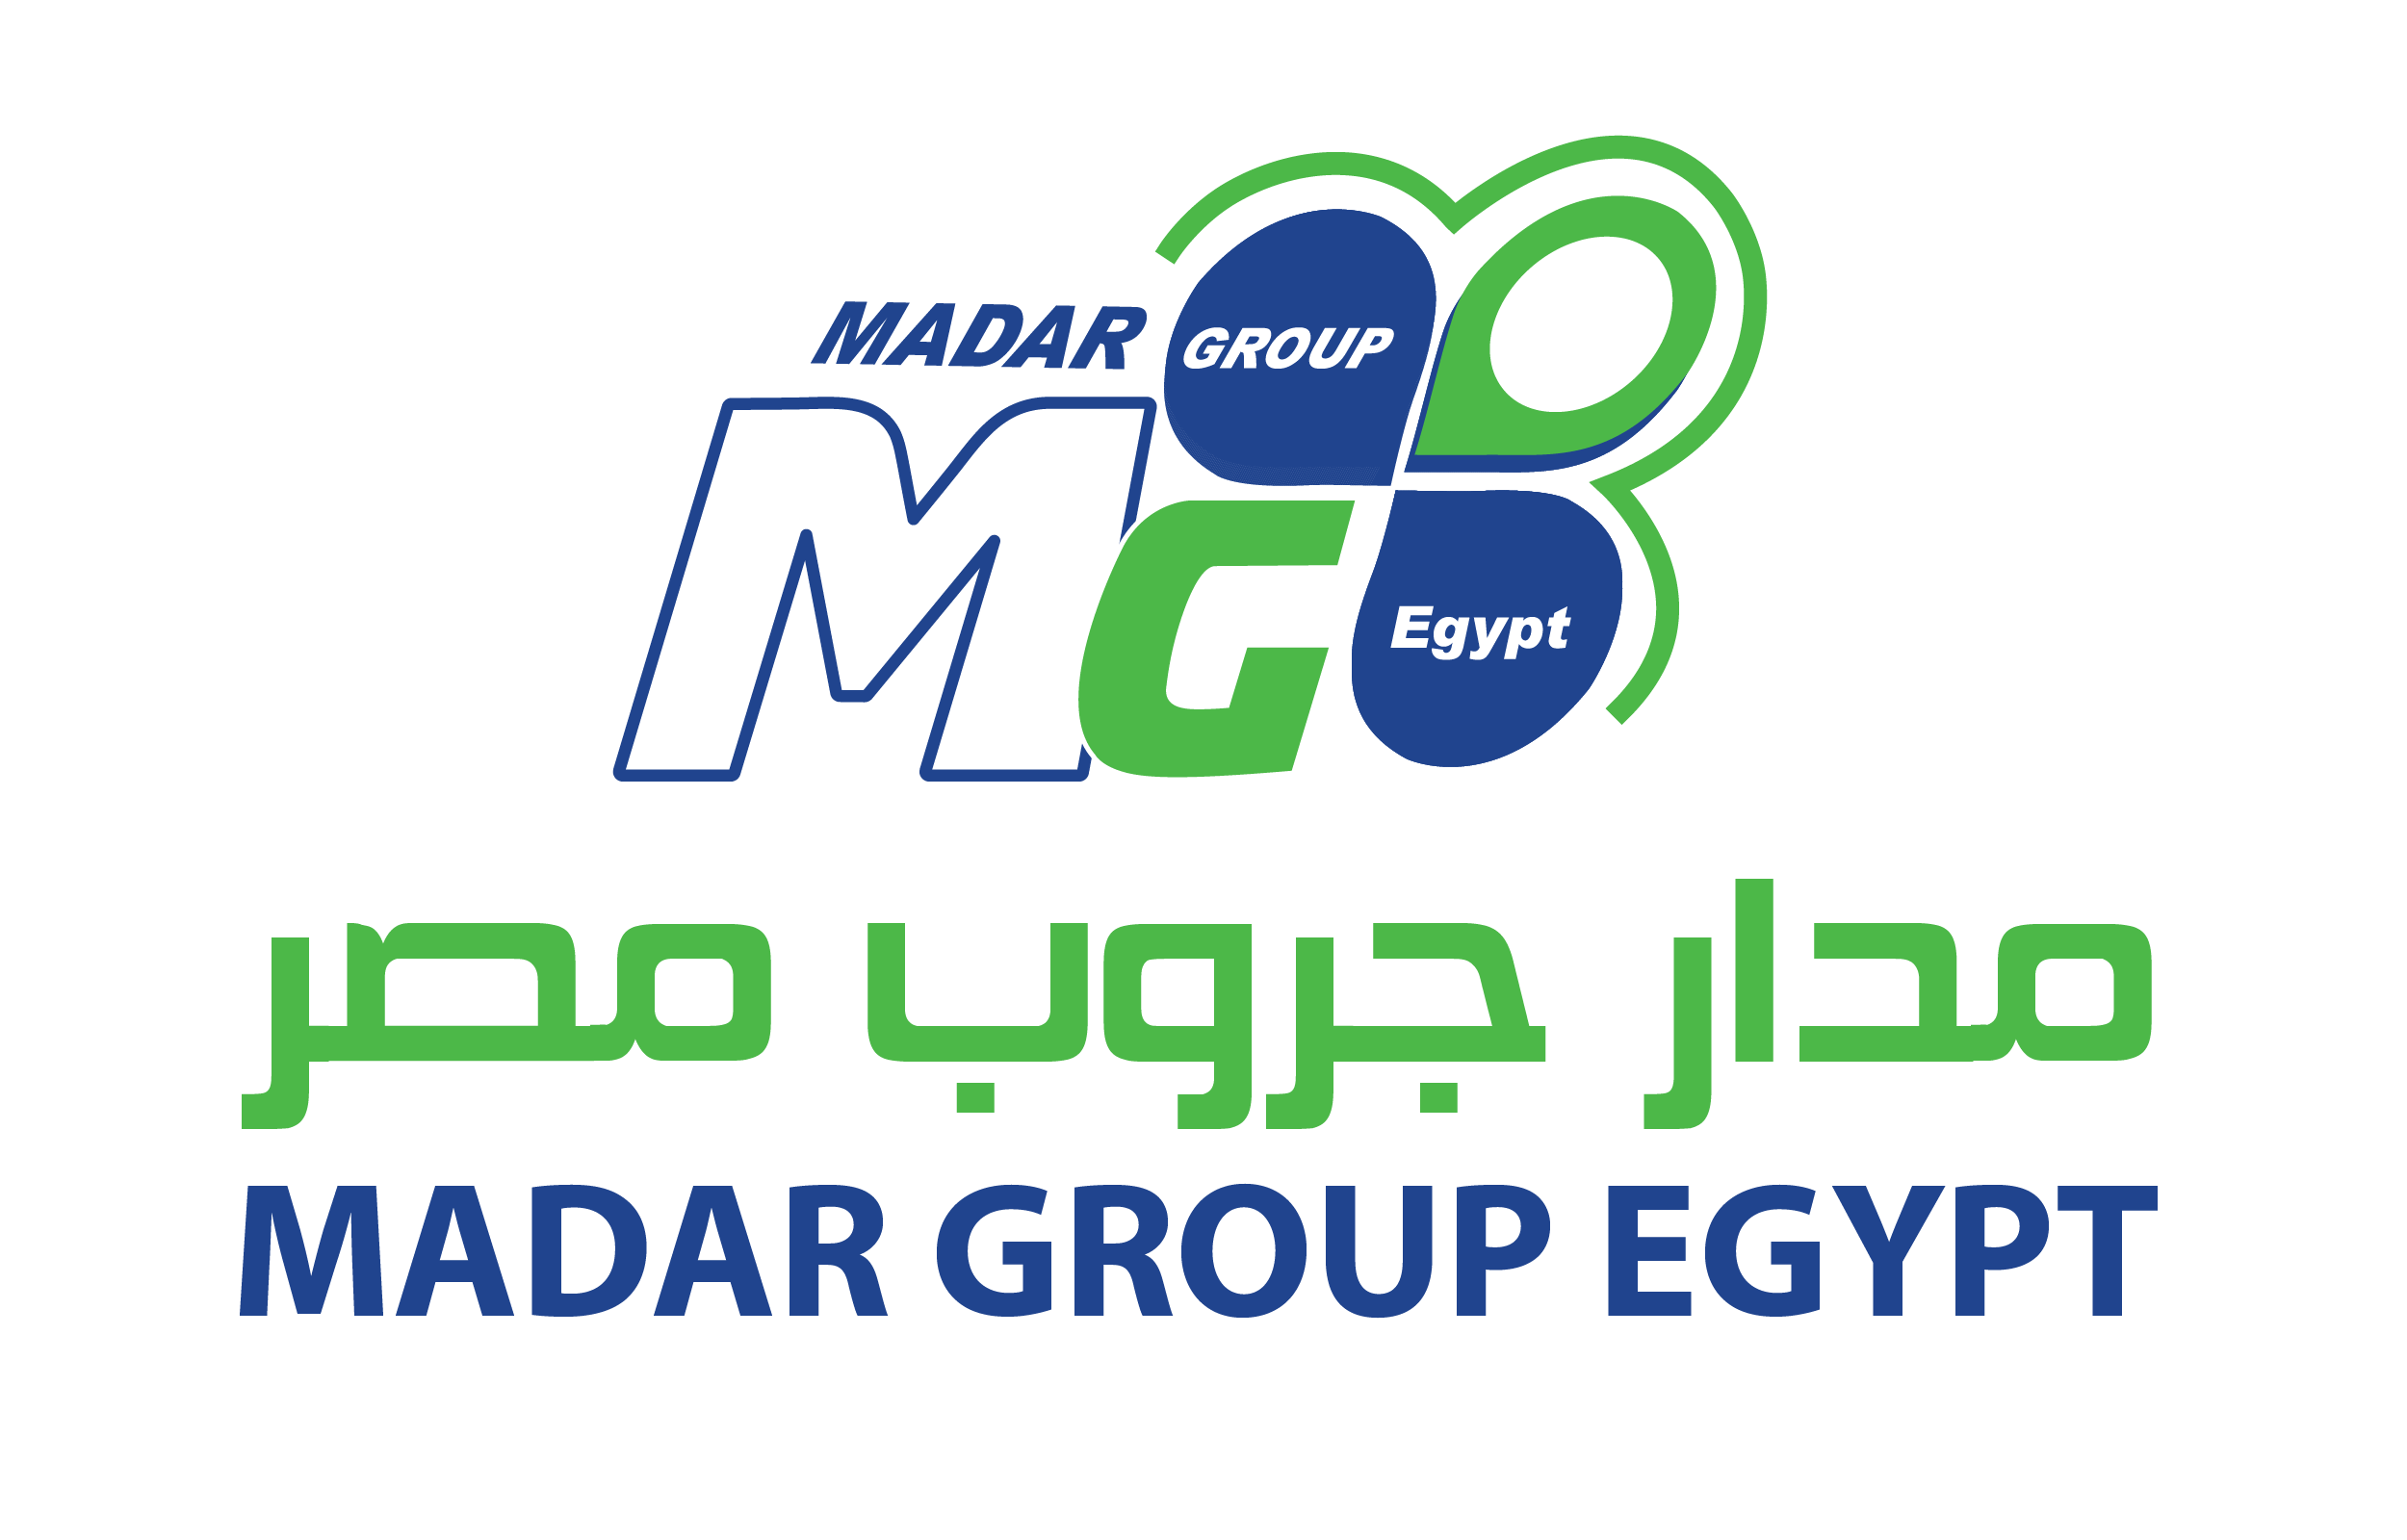 Madar Group Egypt is one of Madar Holding Int companies specialized in FMCG Home Care, Personal Care products and diapers manufacturing and distribution.